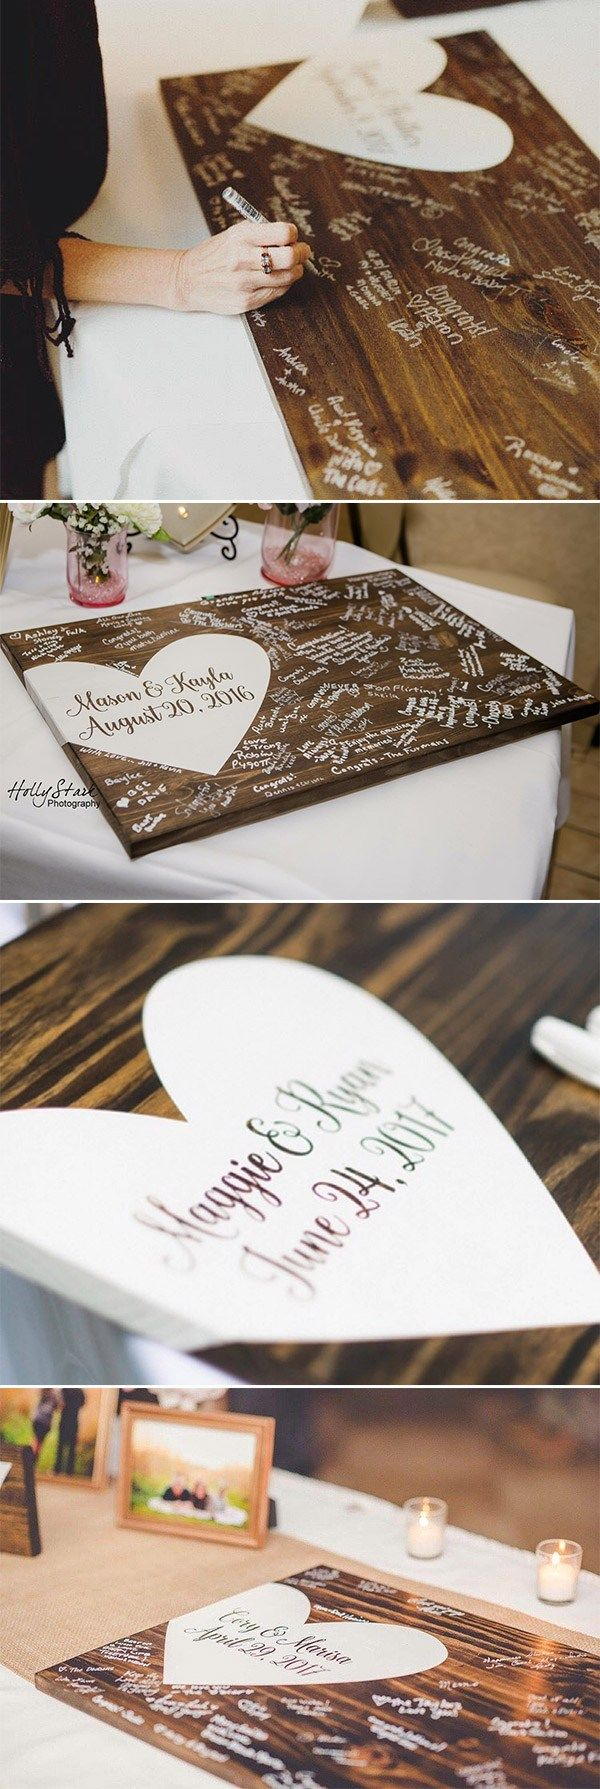 Rustic Country Wooden Wedding Guest Book Ideas #wedding #weddingideas #rusticwedding #weddinguestbook #weddings #weddingreception